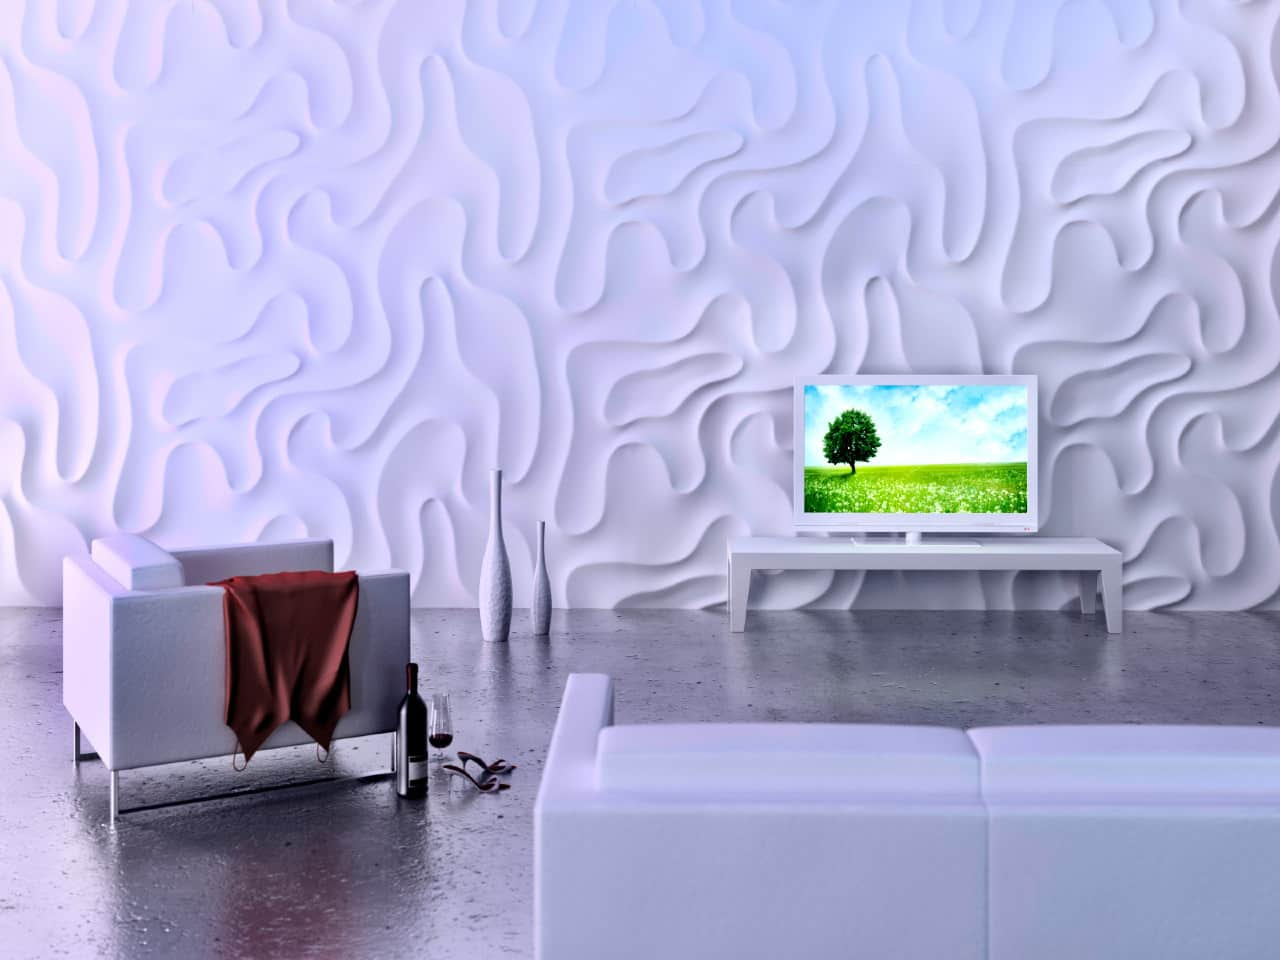 3D Textured Gypsum Wall Panels to Make Accent. Expressive wall structure for spacious minimalistic living room